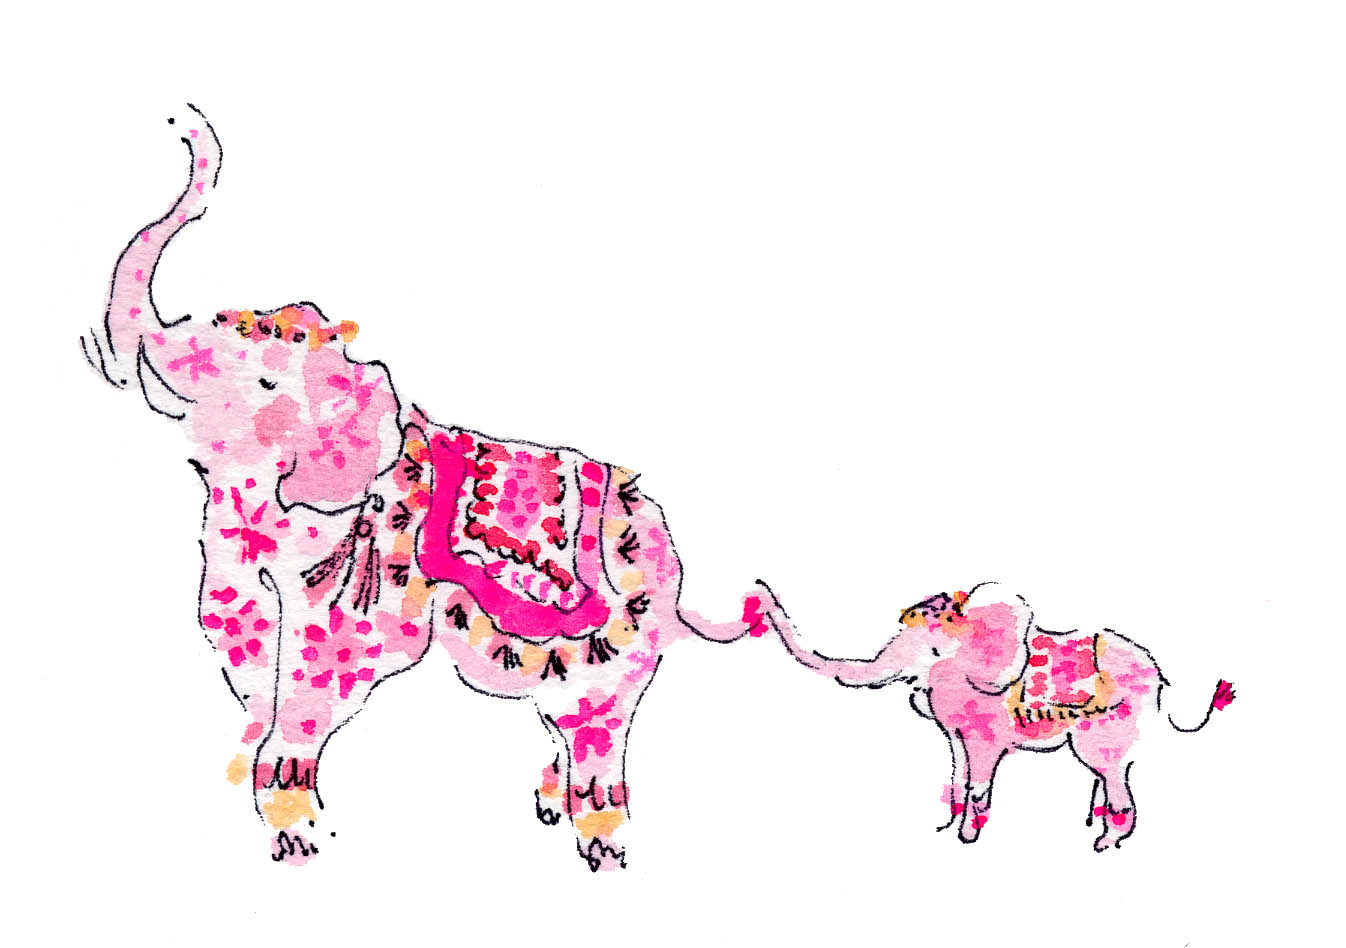 wells pink elephant stationary.jpg